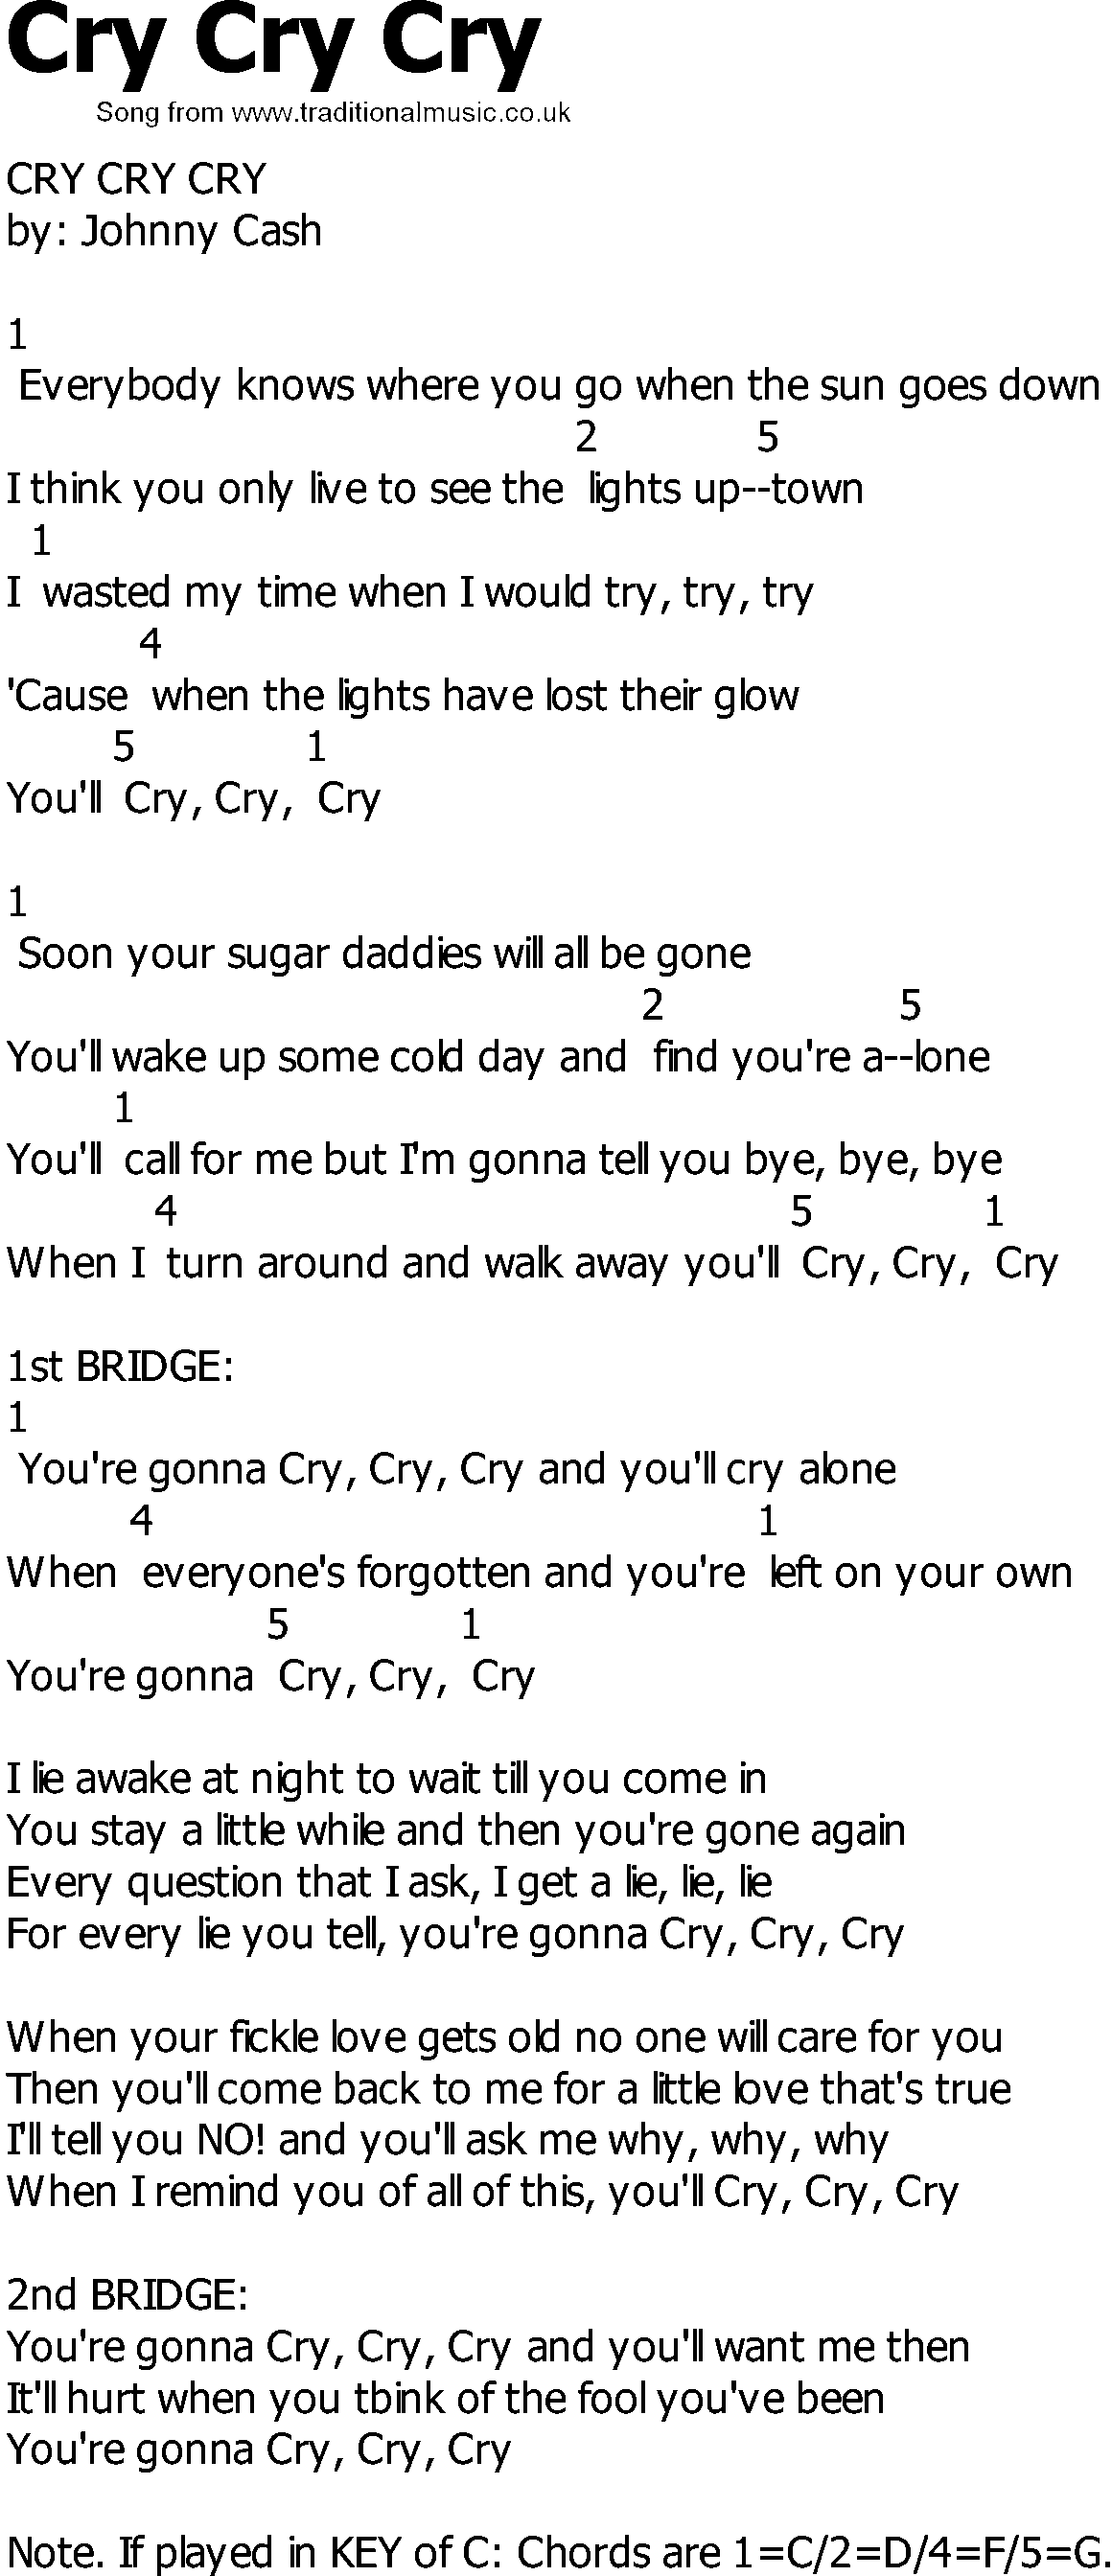 Old Country Song Lyrics With Chords Cry Cry Cry